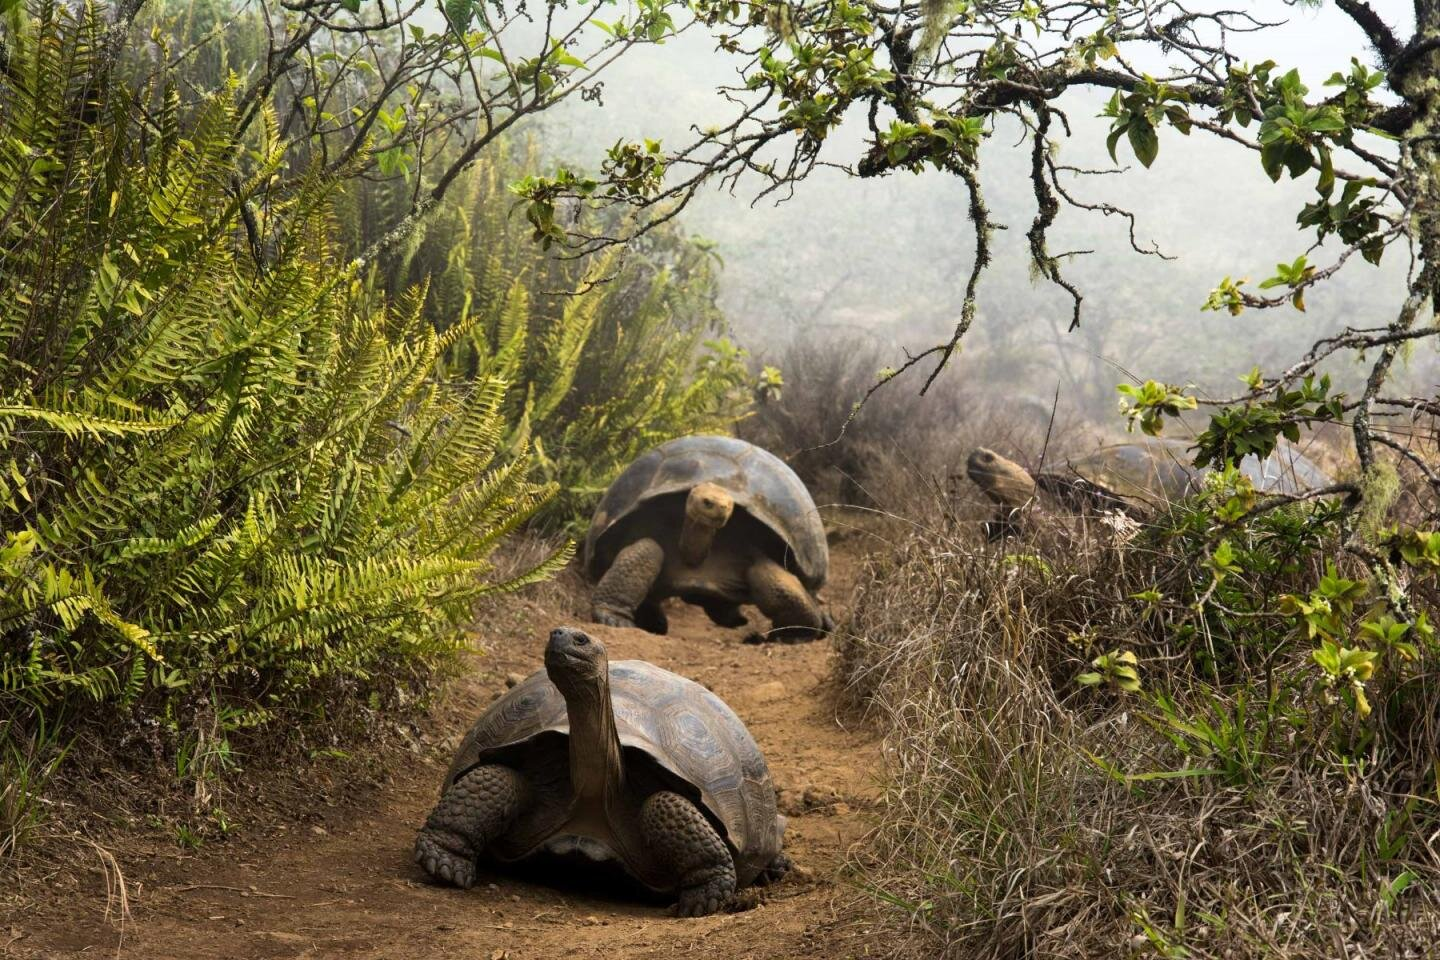 Human action key to antibiotic resistance in giant tortoises of Galapagos